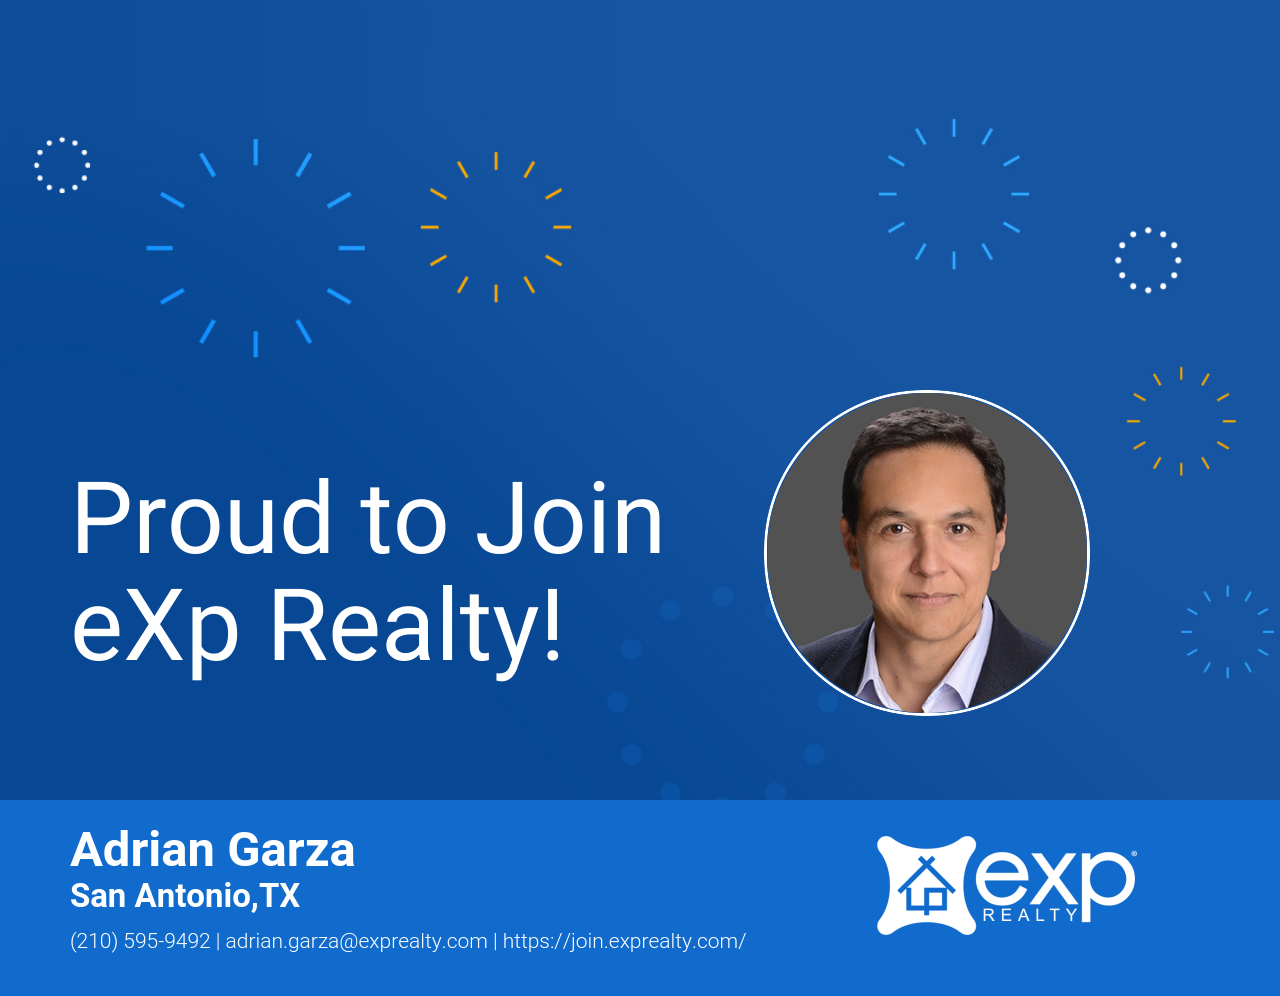 Adrian Garza Joined eXp Realty!